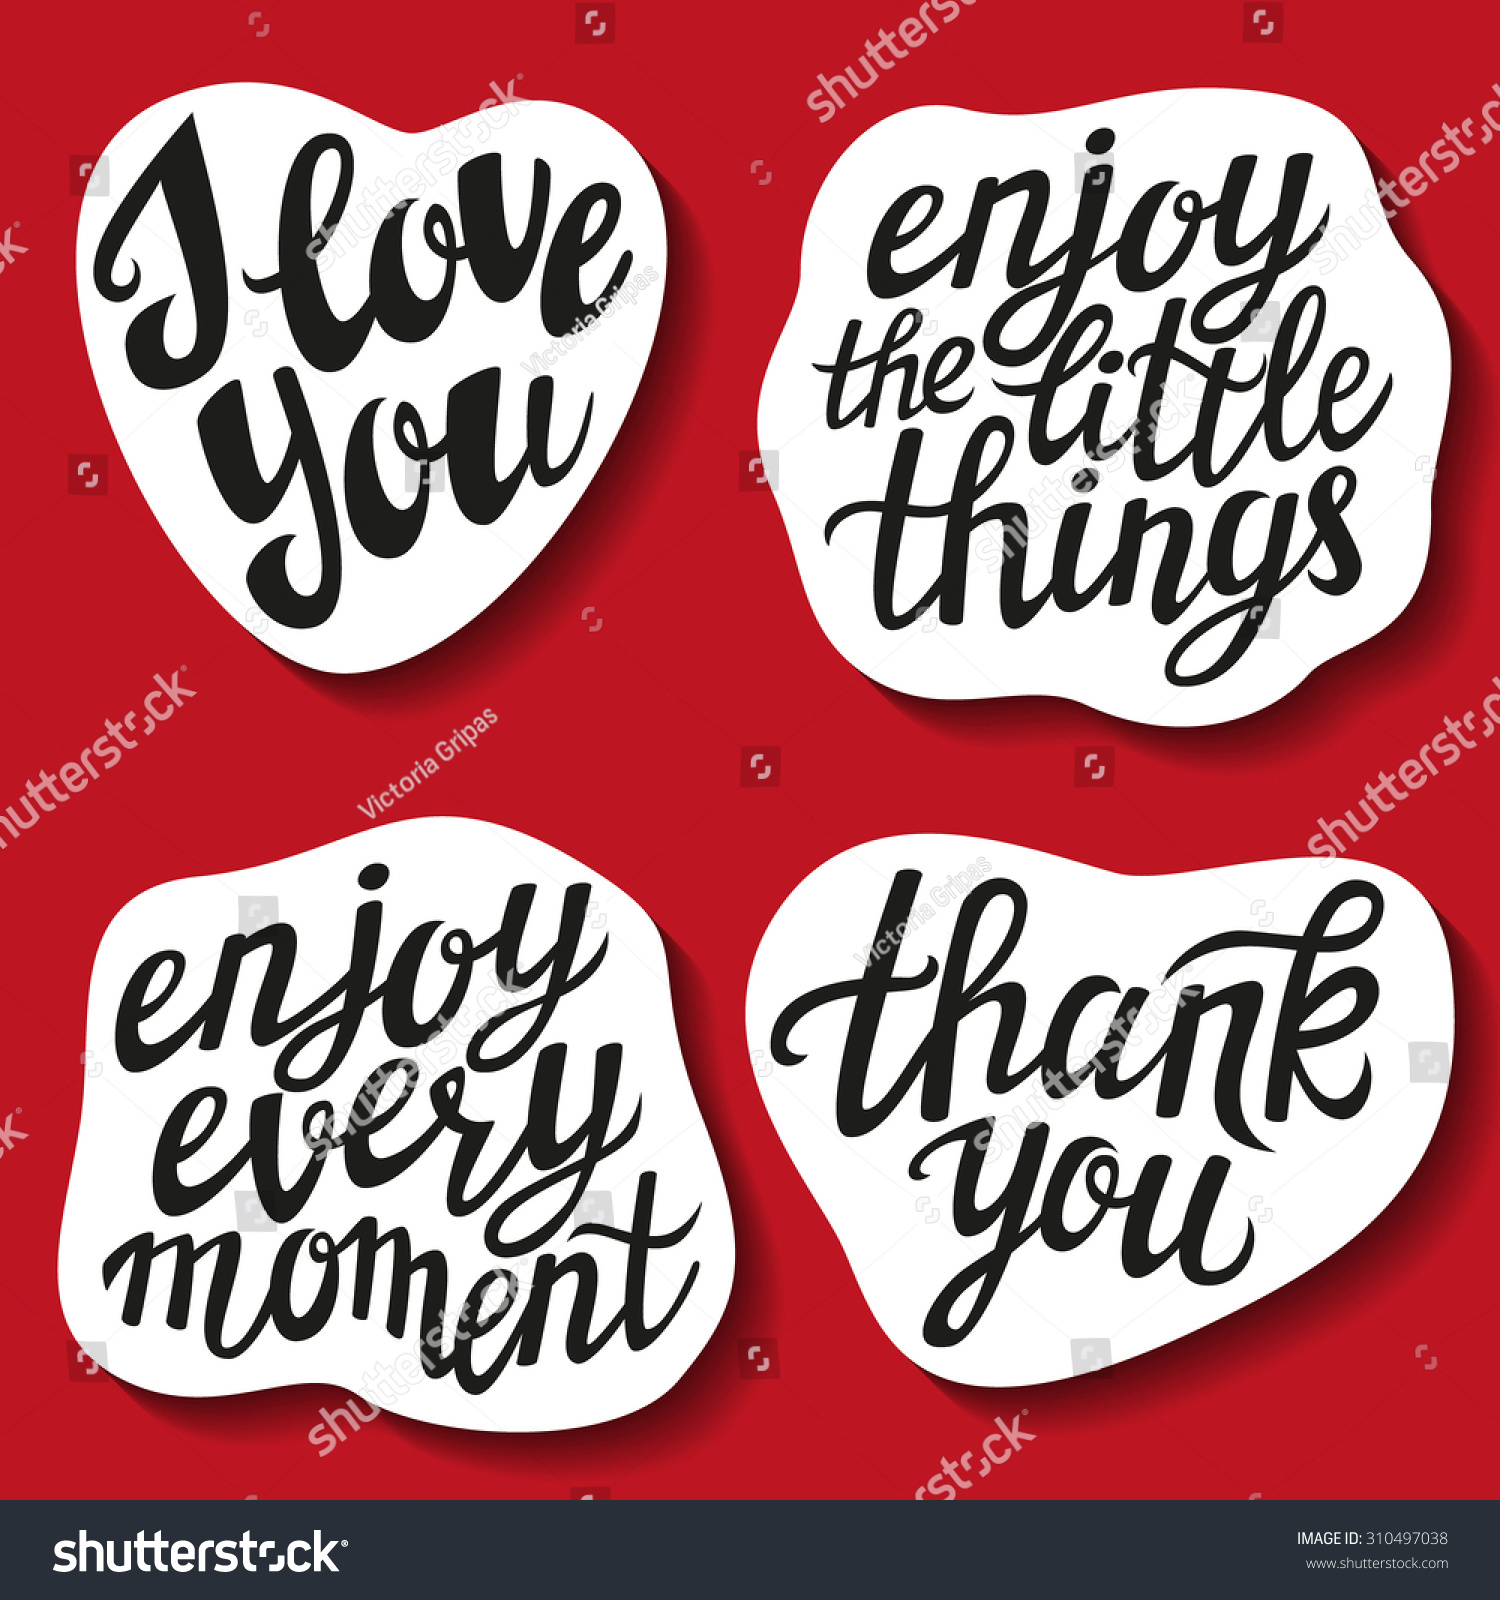 Love You Thank You Quotes Set Hand Lettering Stickers Popular Quotes Stock Vector 310497038